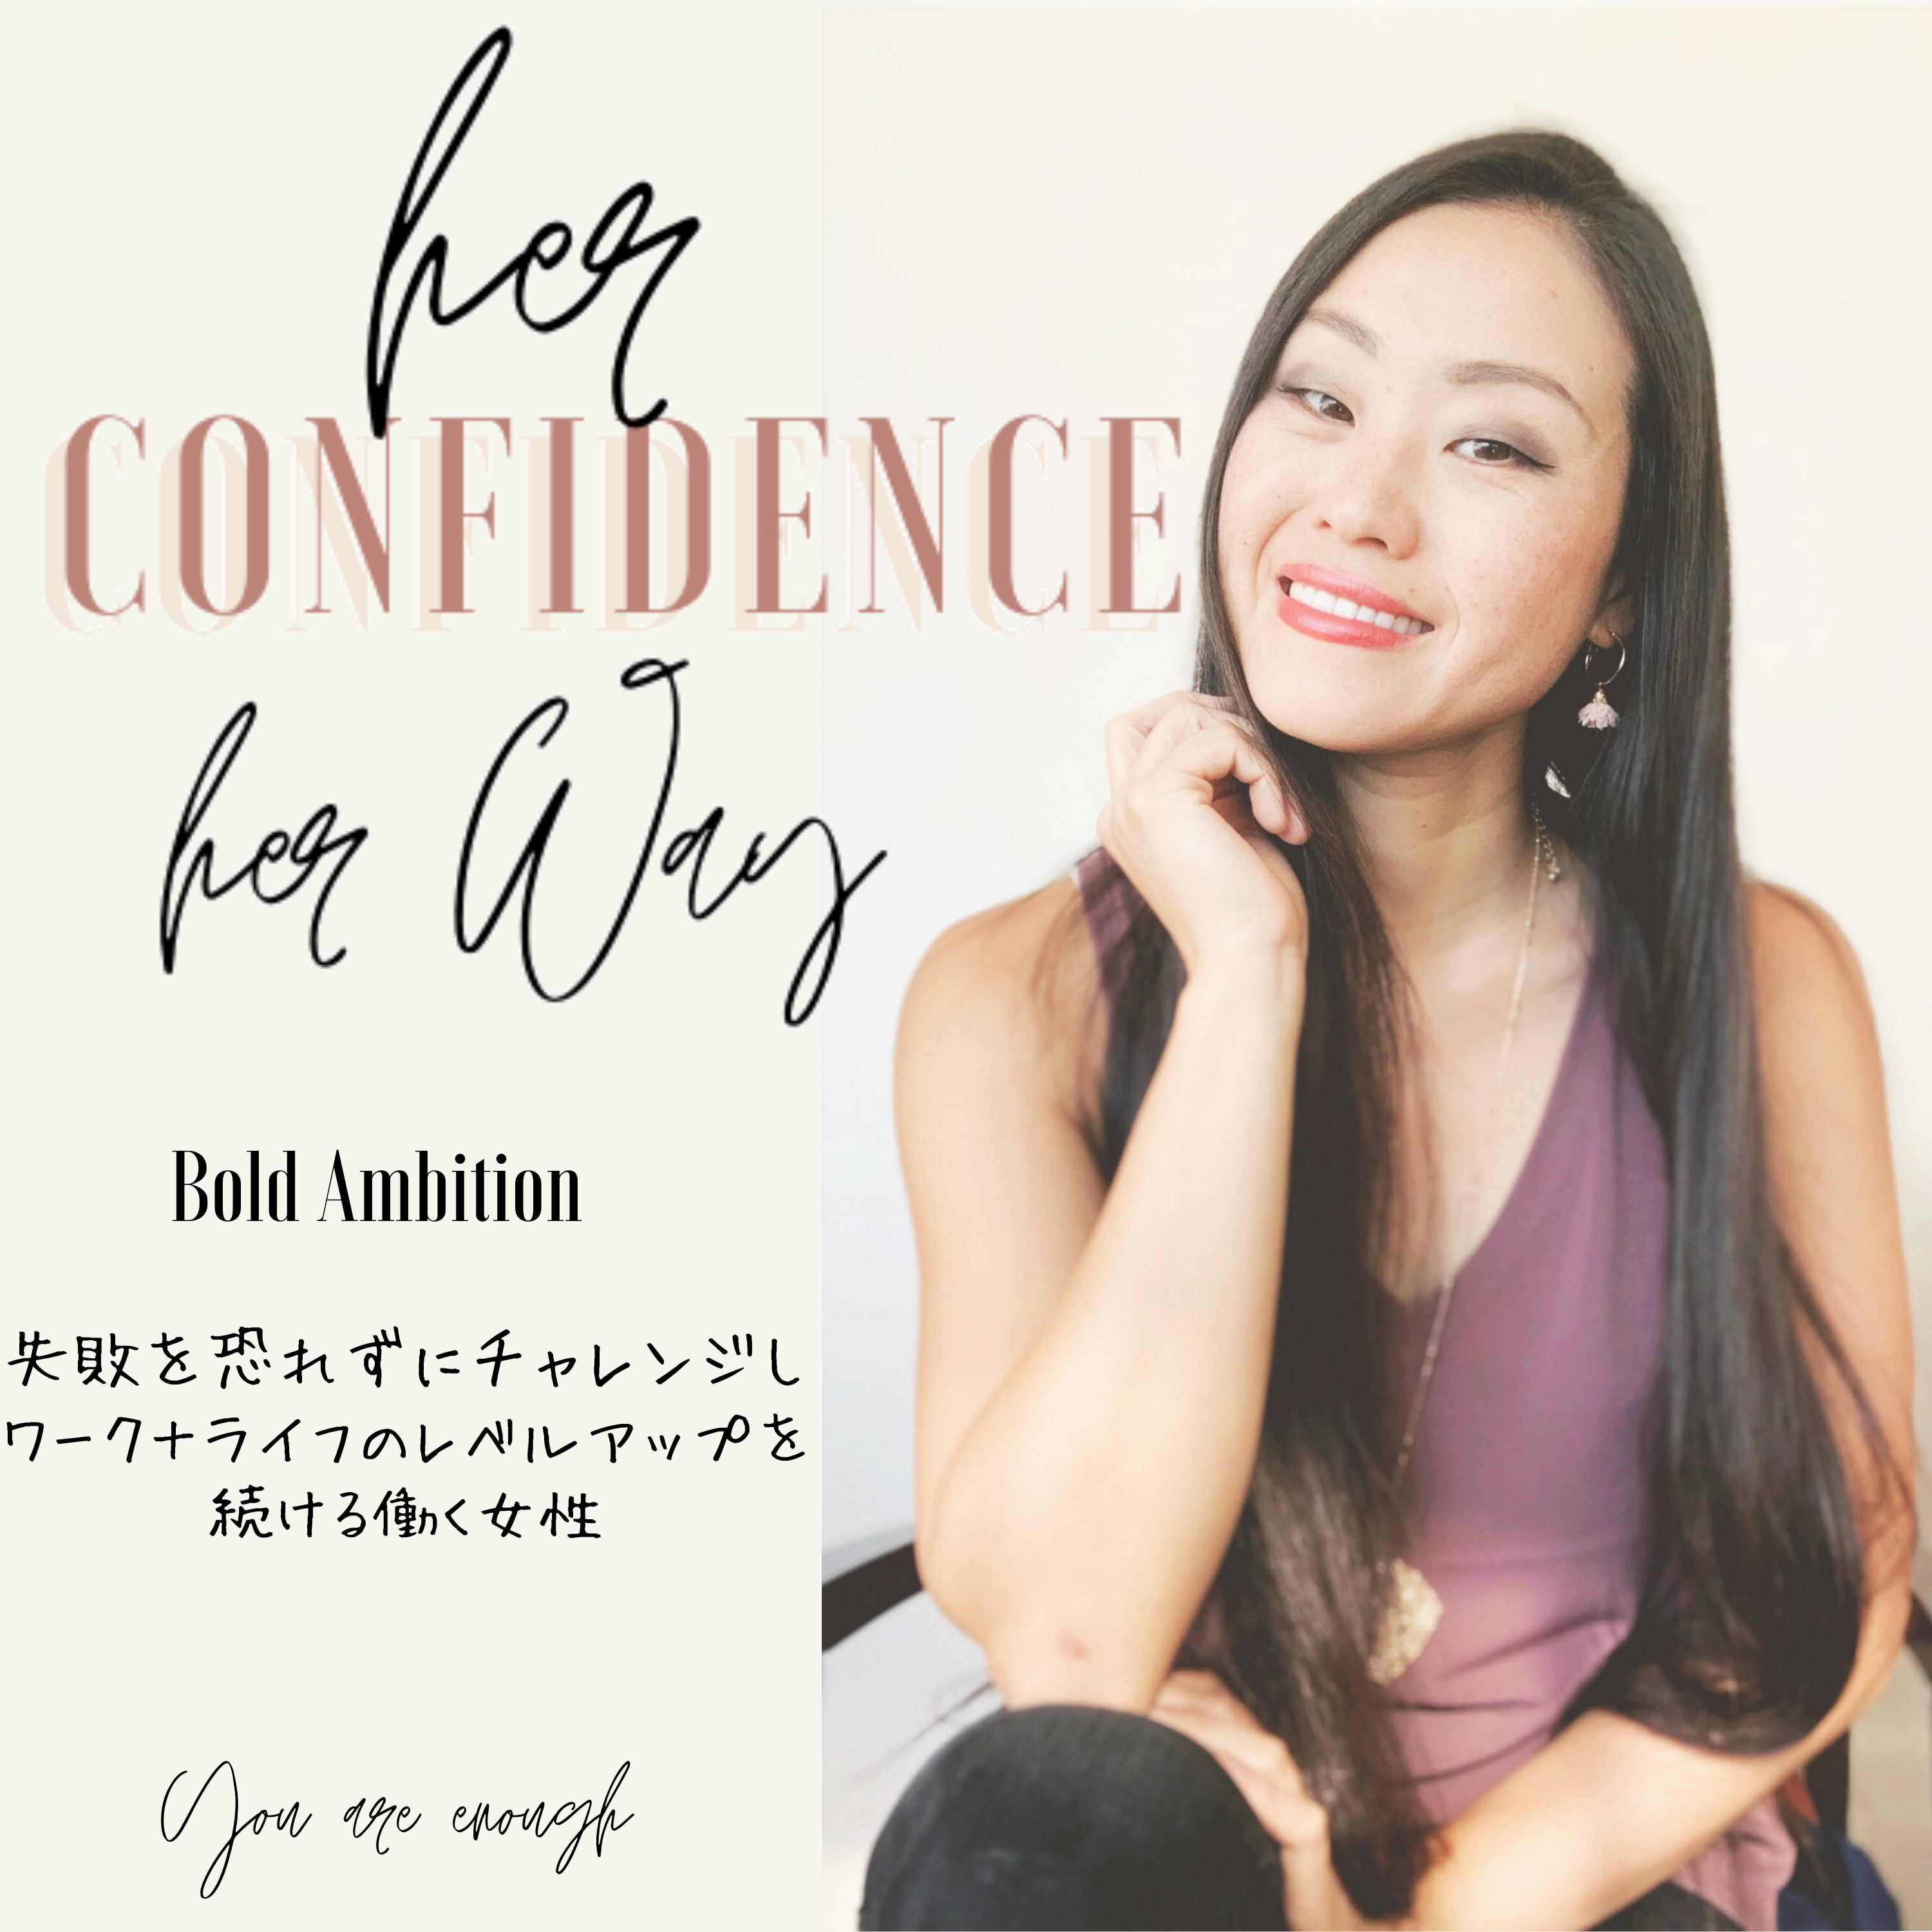 Her Confidence Her Way |アメリカ発、女性のワークライフ+自信+マインドセット